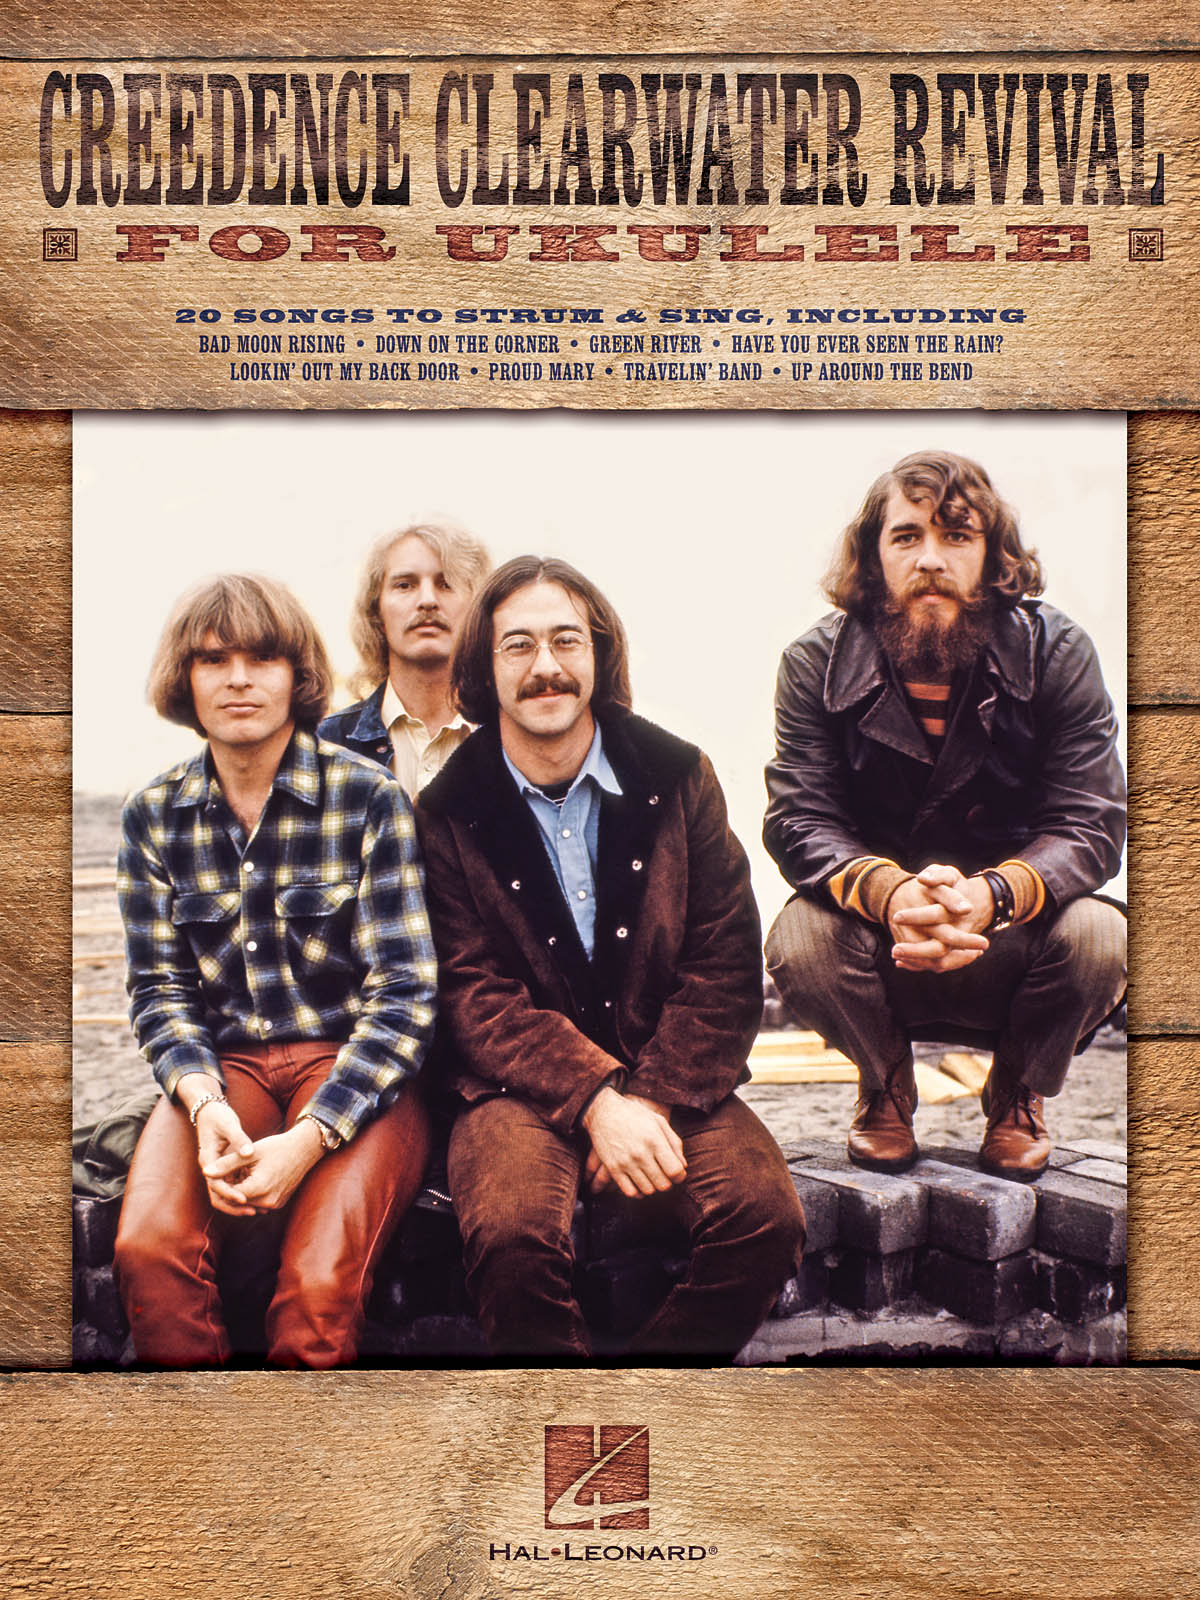 Creedence Clearwater Revival: Creedence Clearwater Revival for Ukulele: Ukulele